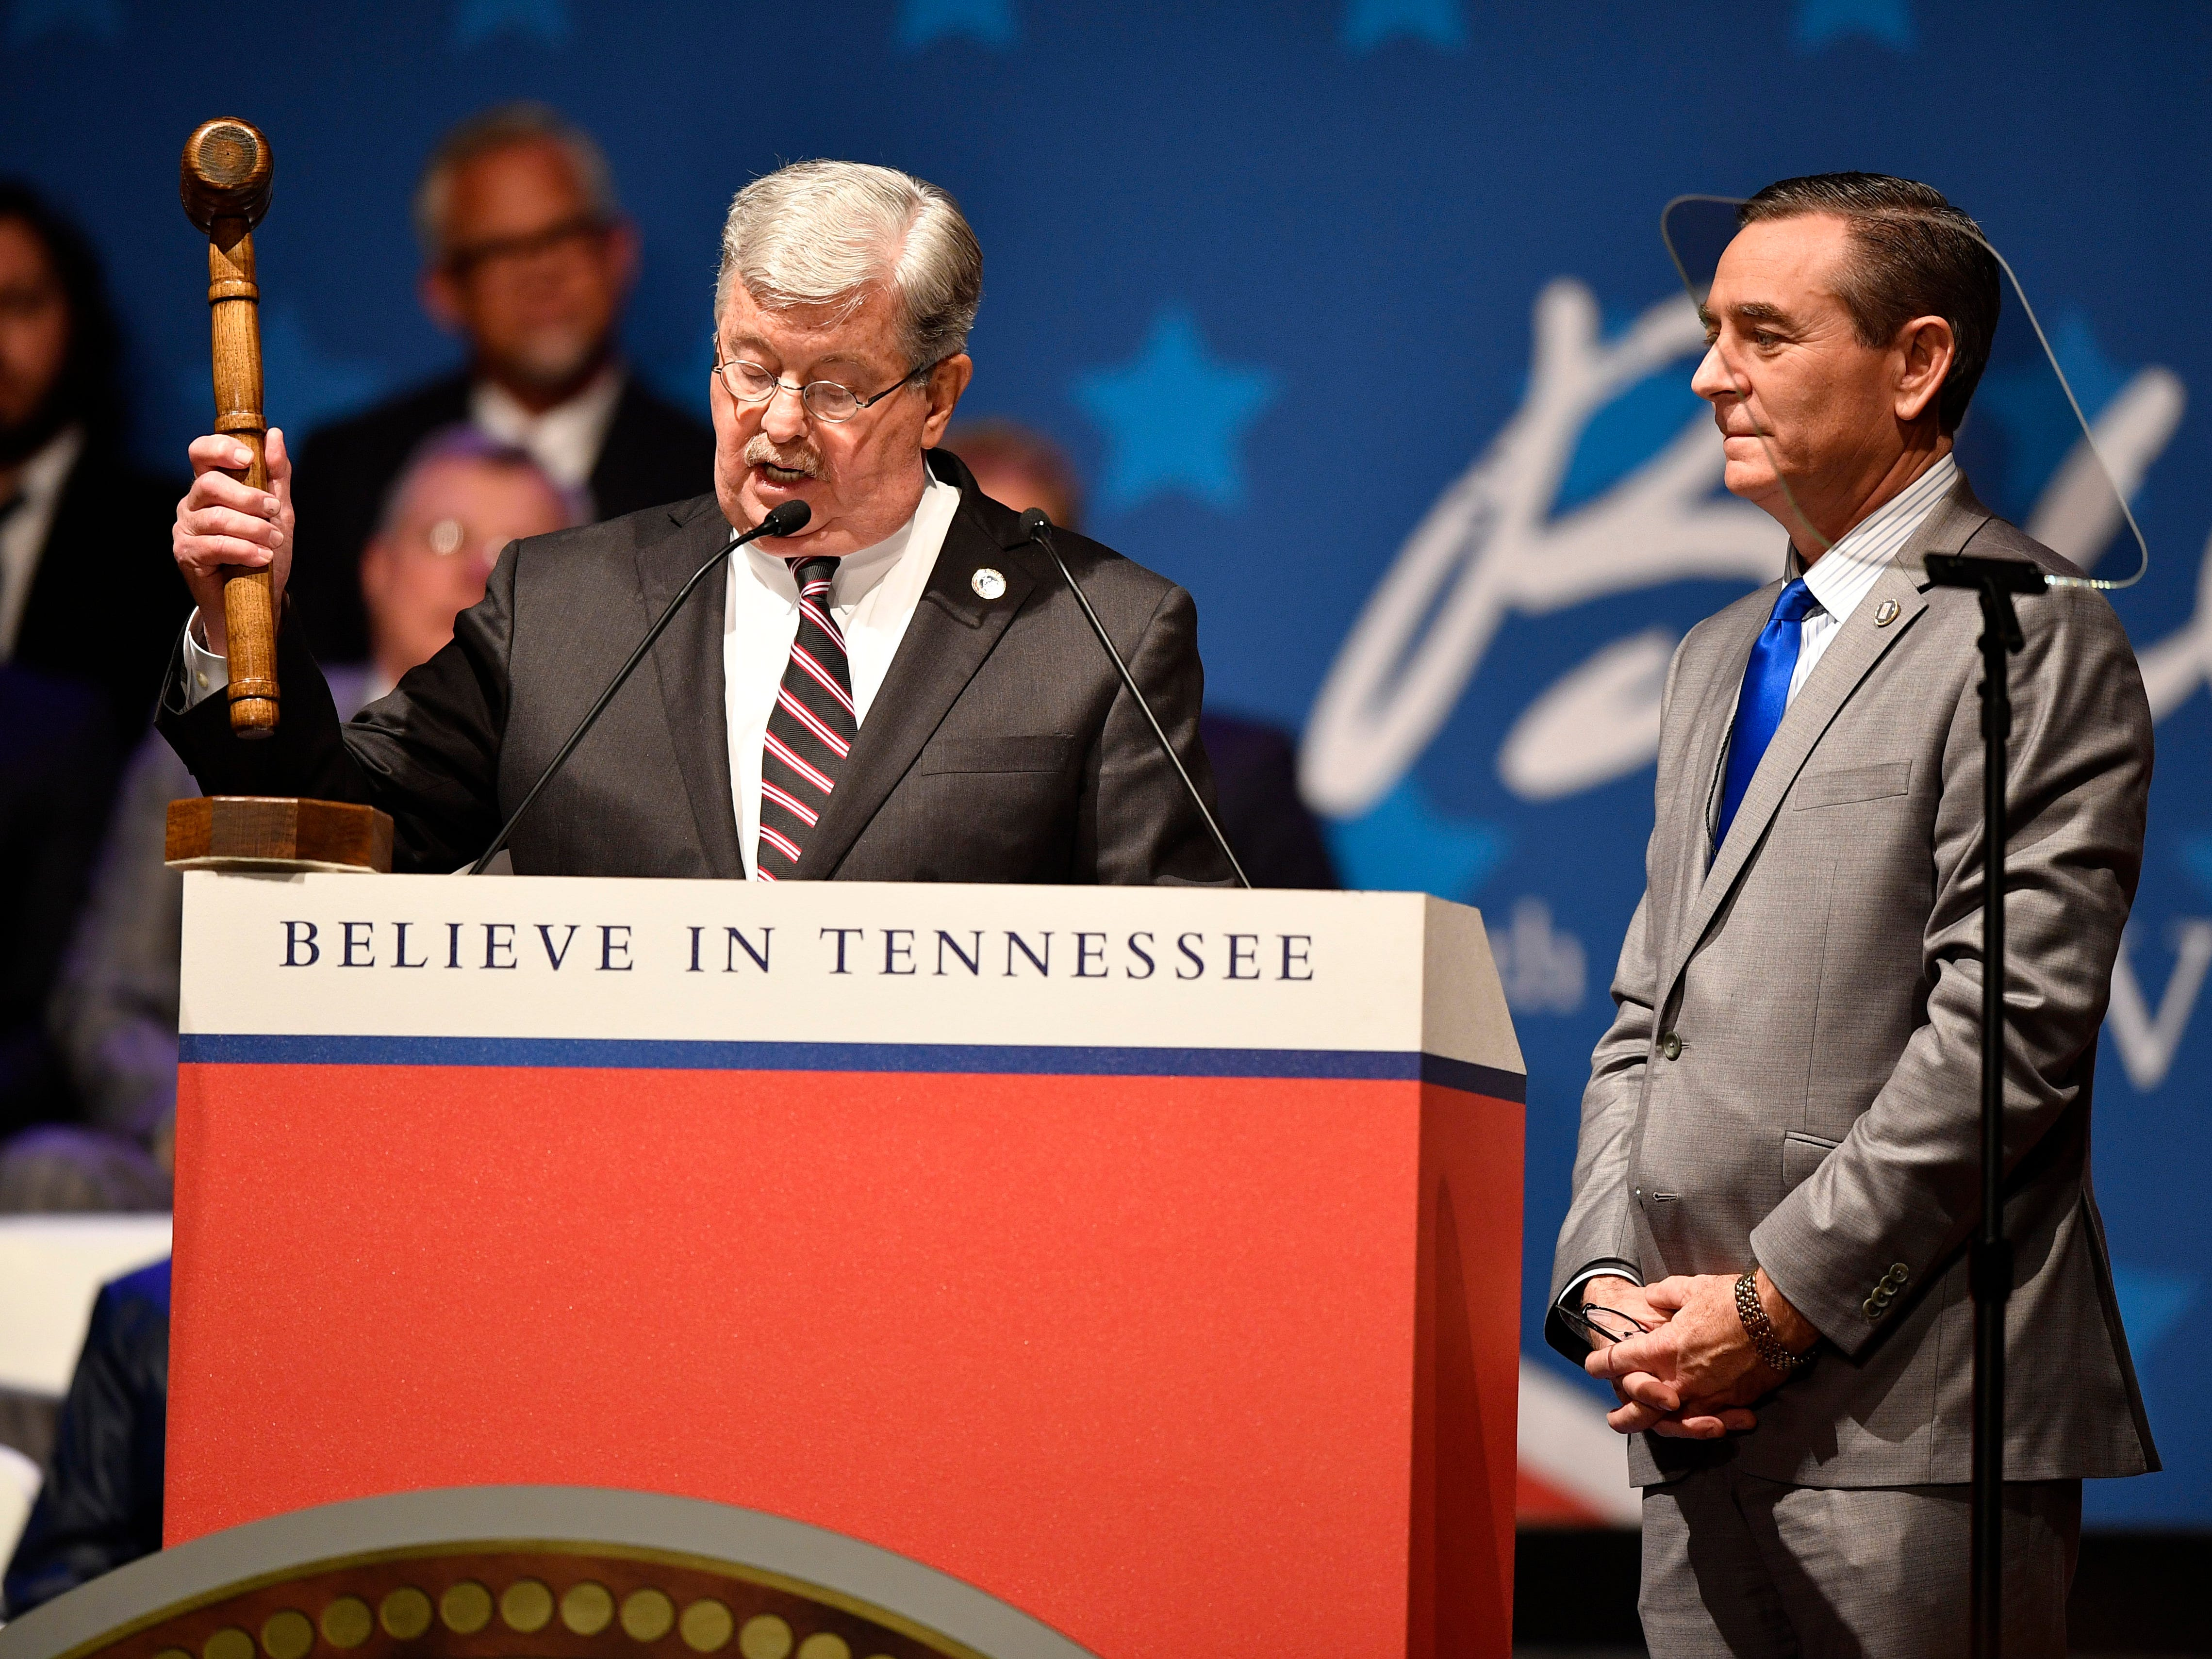 Lt. Gov. Randy McNally bangs the gavel as House Speaker Glen Casada looks on at the start of the inauguration of Bill Lee as the 50th governor of Tennessee at War Memorial Auditorium in Nashville, Tenn., Saturday, Jan. 19, 2019.